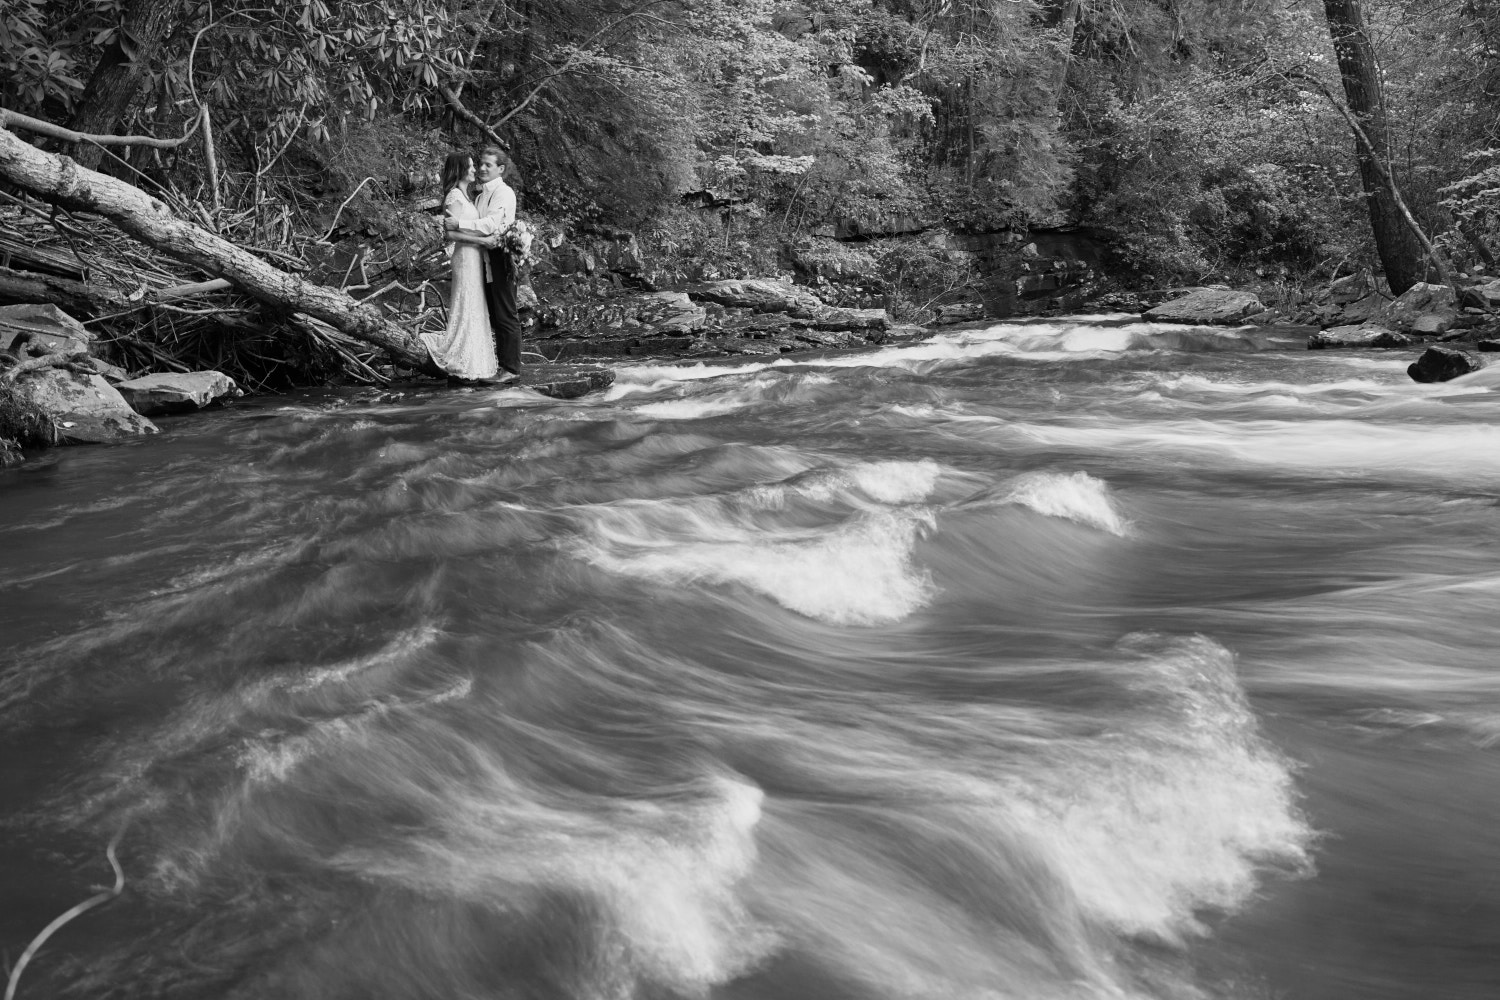 Tennessee forest elopement near river - Intrepid elopements by Yeoto Images Sarah Arnoff Yeoman